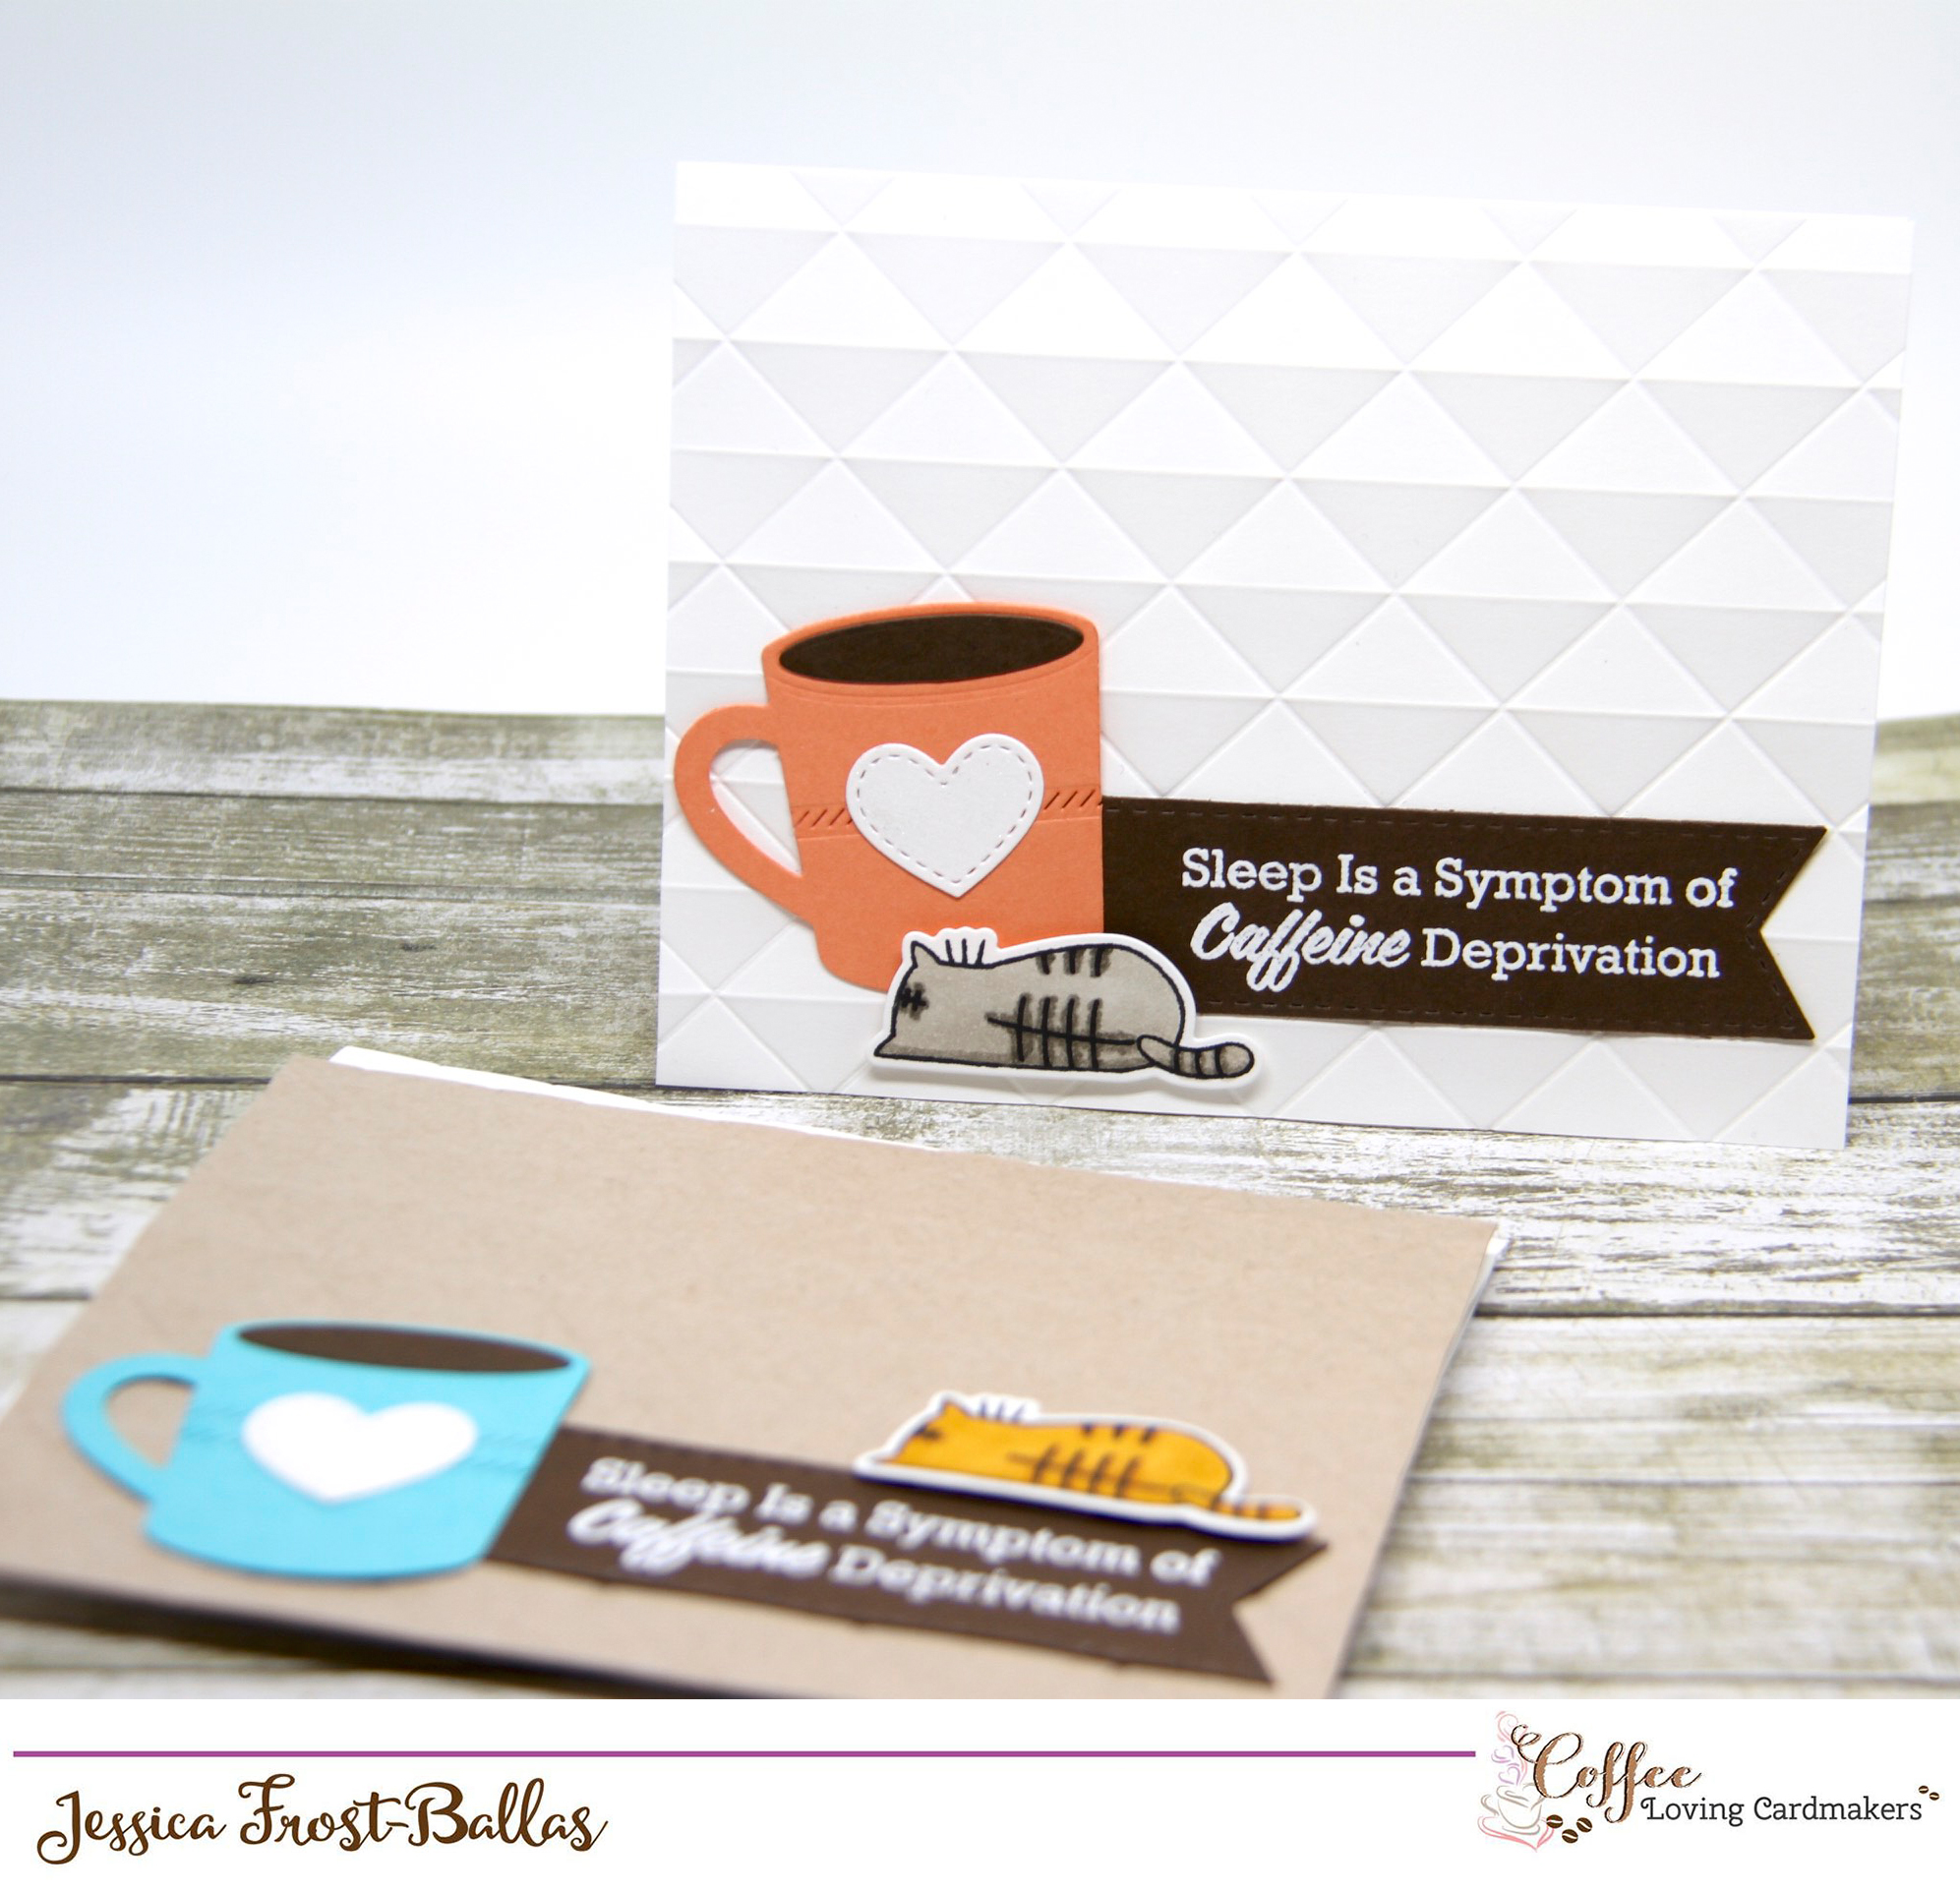 Coffee Loving Cardmakers Sponsor Solo: My Favorite Things